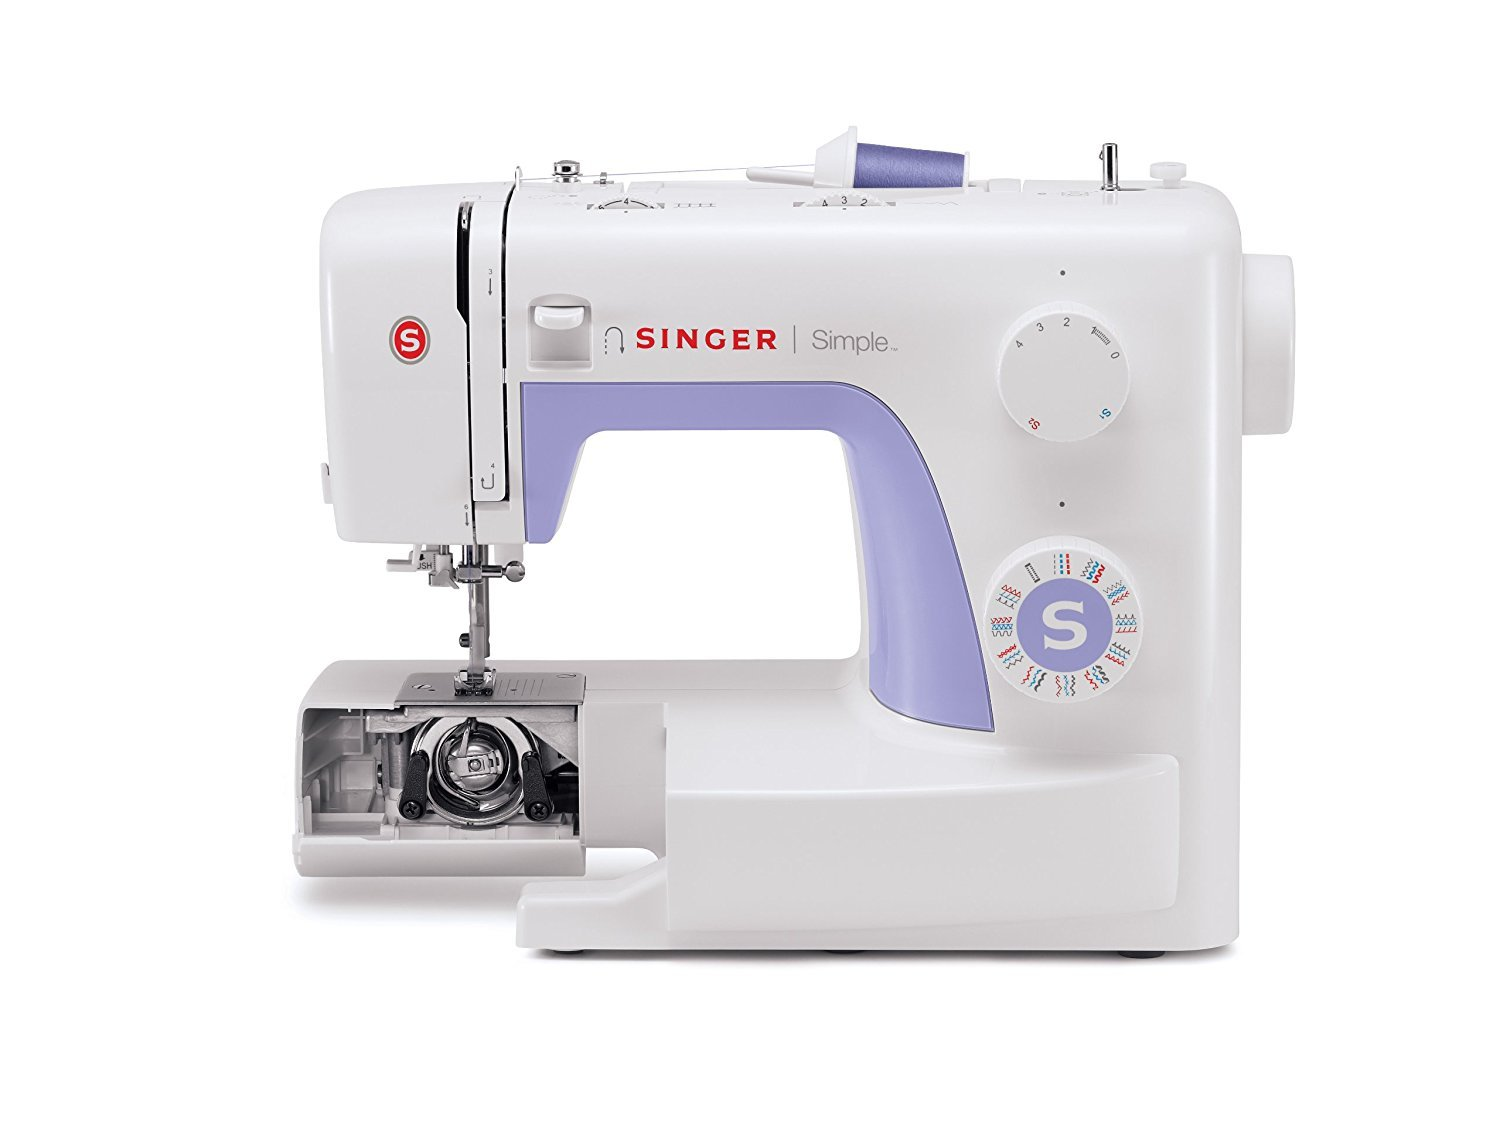 Automatic Needle Threader and Free Arm SINGER Simple 3232 Portable Sewing Machine with 32 Built-In Stitches Including 19 Decorative Stitches Best Sewing Machine for Beginners